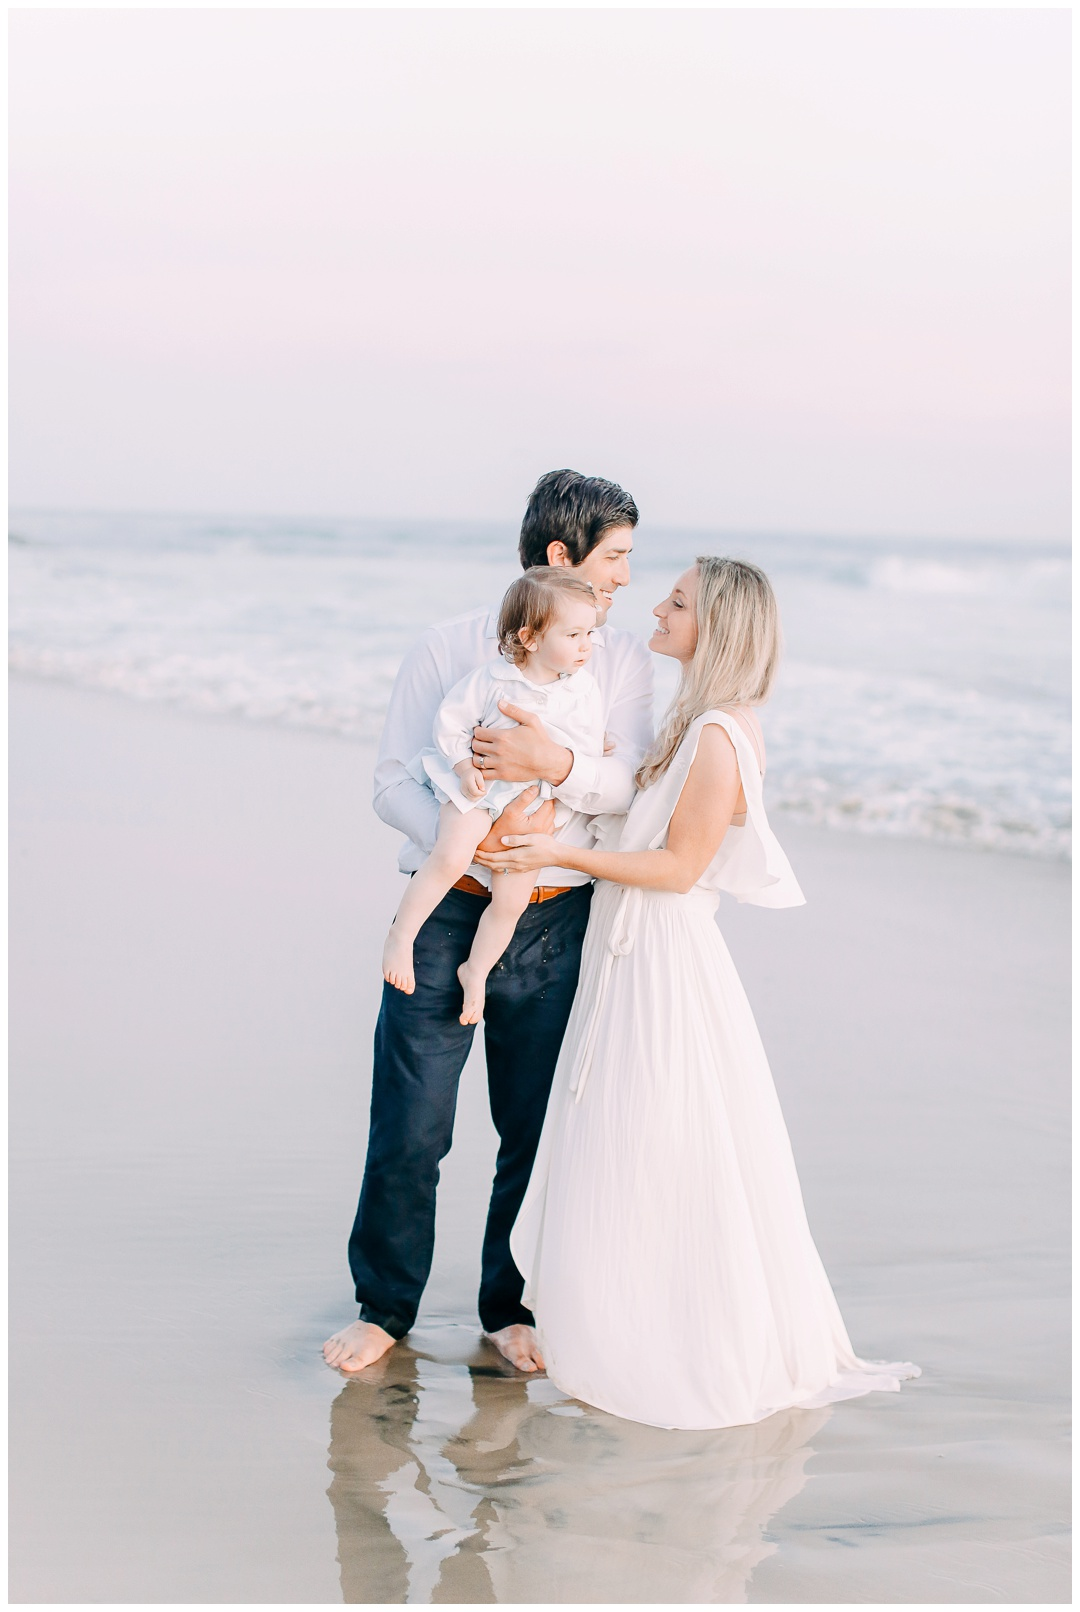 Newport_Beach_Maternity_Photographer_Orange_County_Maternity_Photography_Cori_Kleckner_Photography_Orange_County_Family_Photographer_Beach_Maternity_Session_1161.jpg